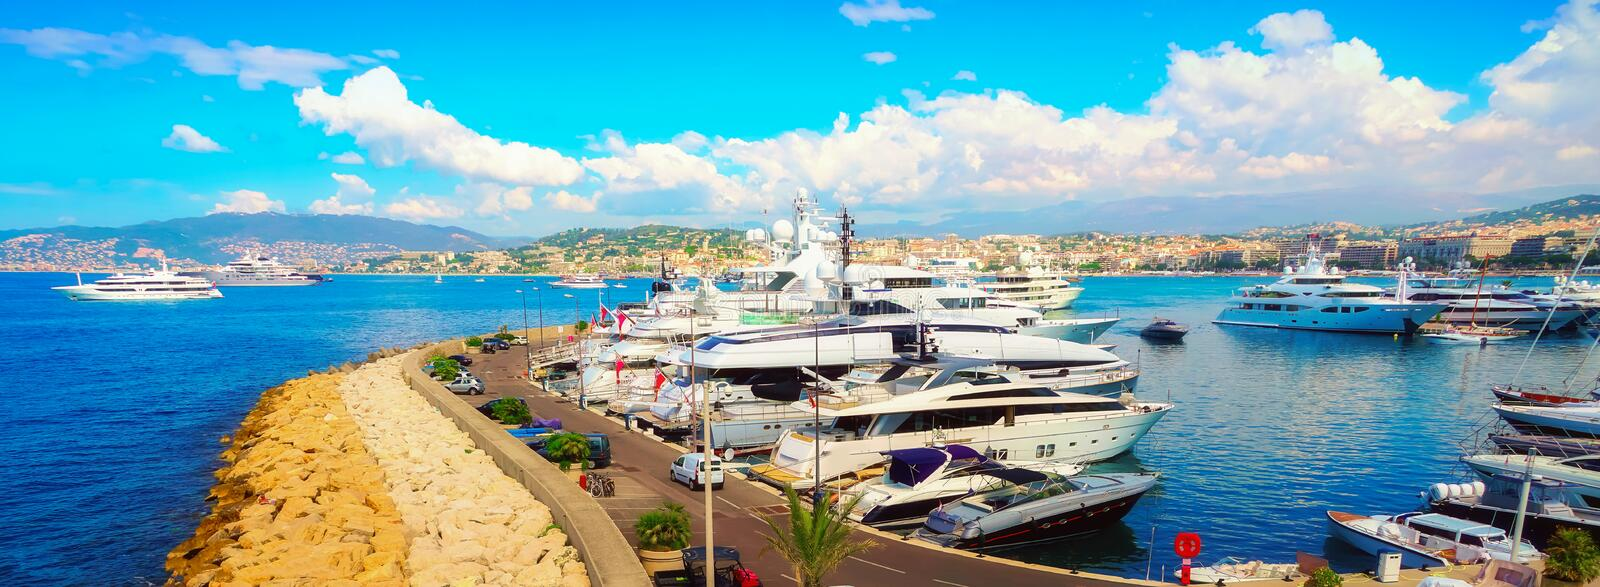 Luxurious yachts in port Pierre Canto in Cannes. A panoramic aerial image of the harbour during the film festival in one of the most famous cities in the French royalty free stock photos